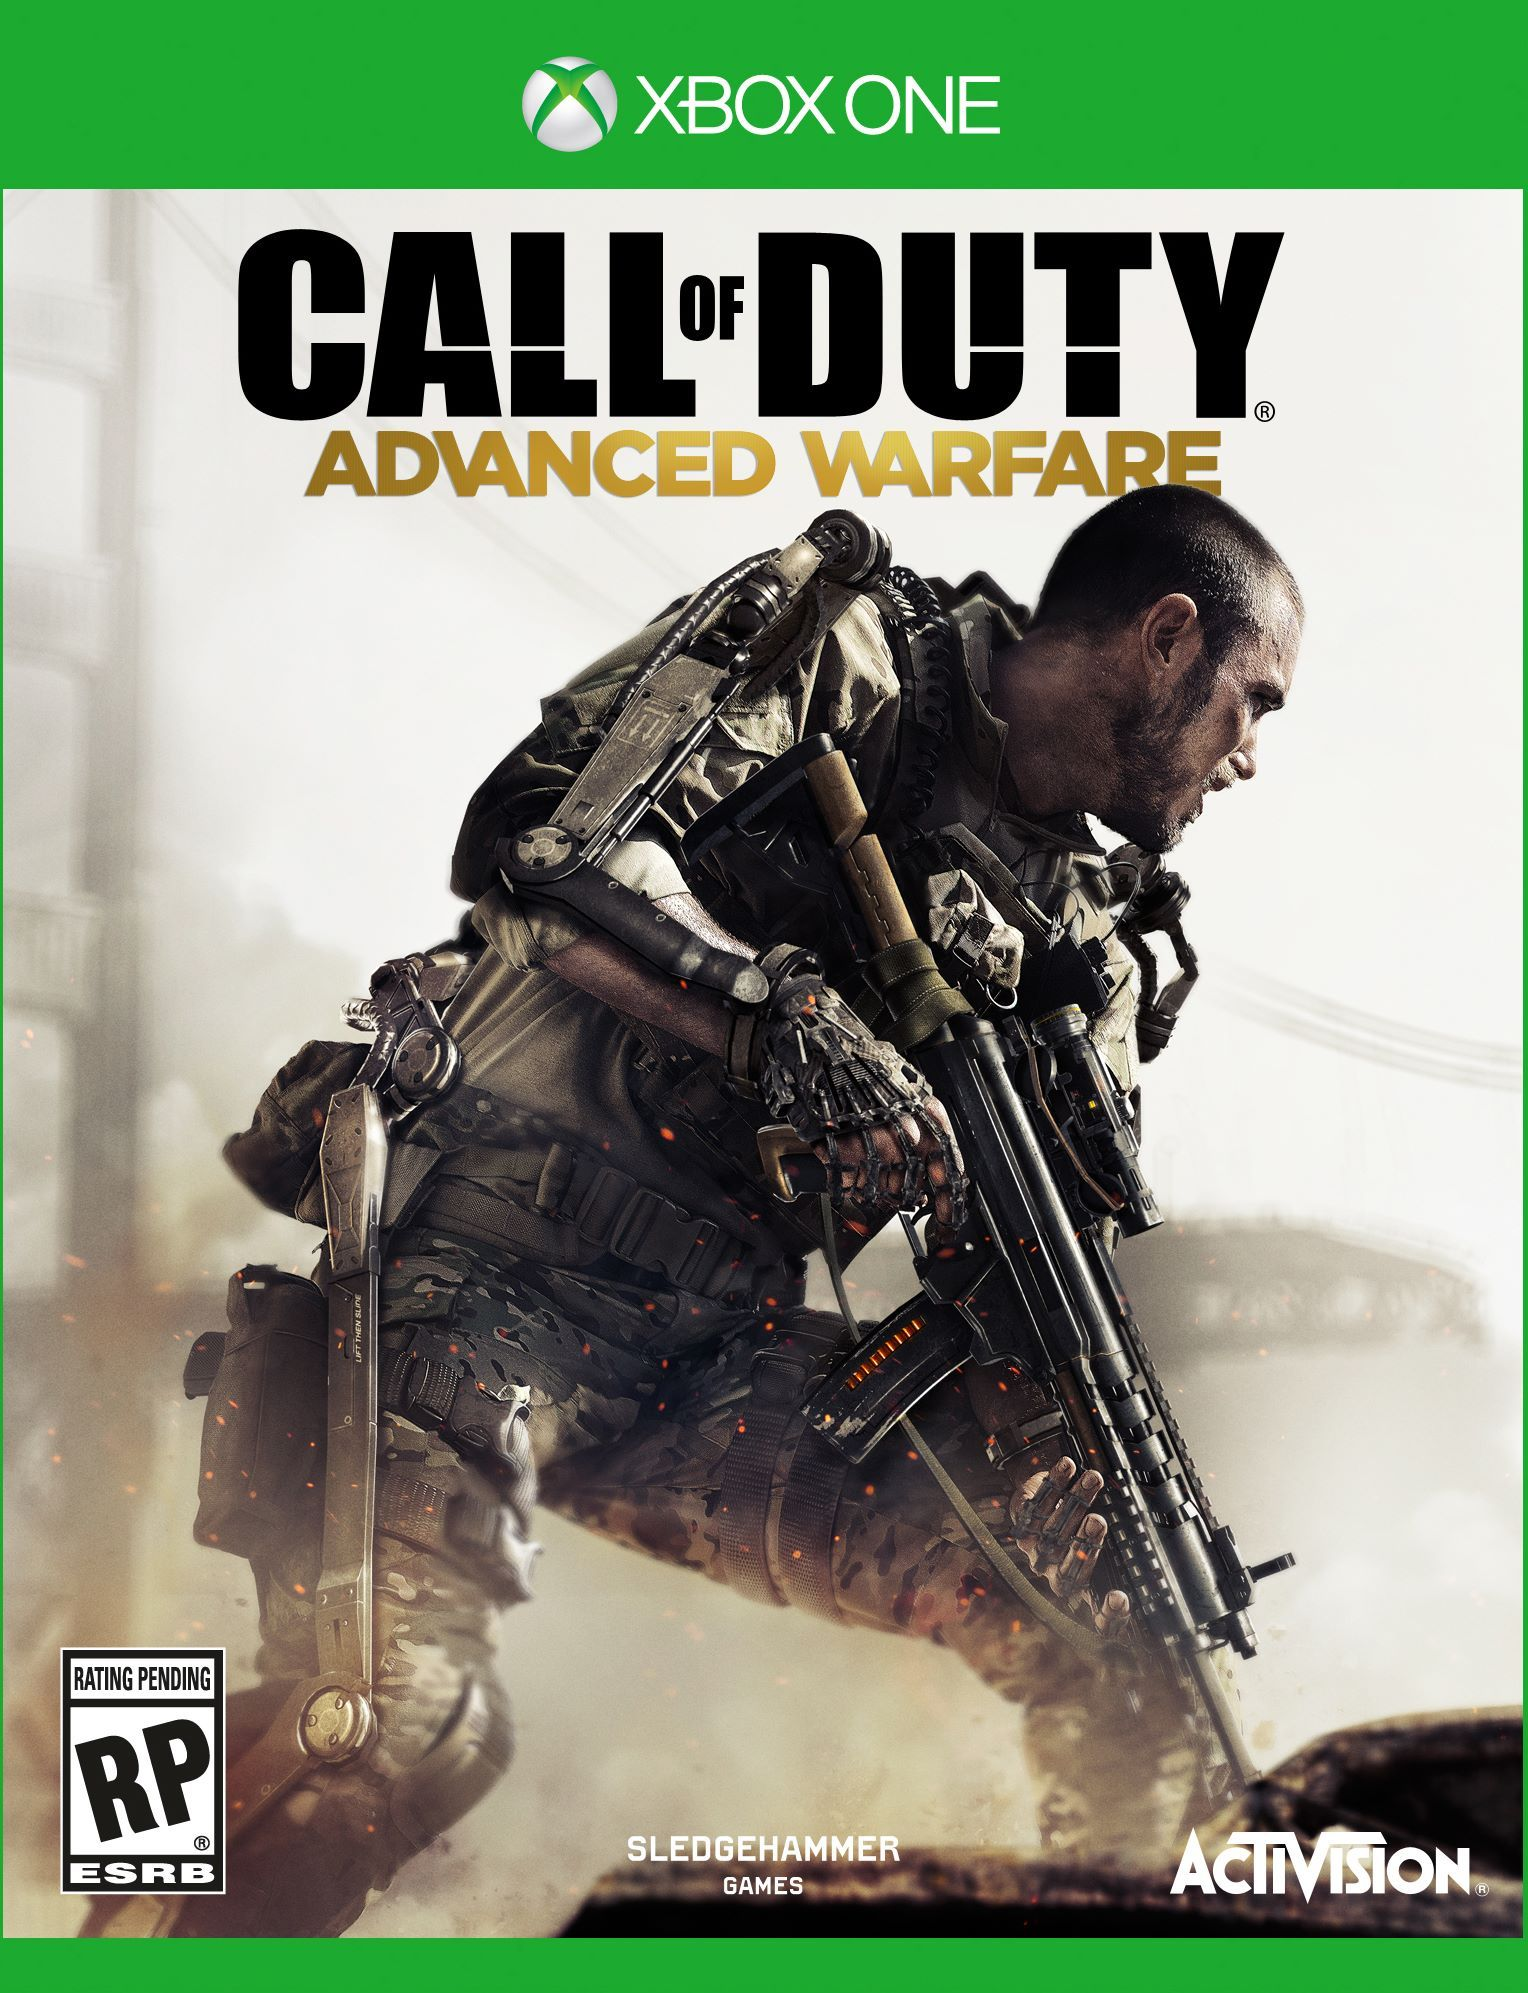 Xbox 1 Games Covers xbox one game covers -...